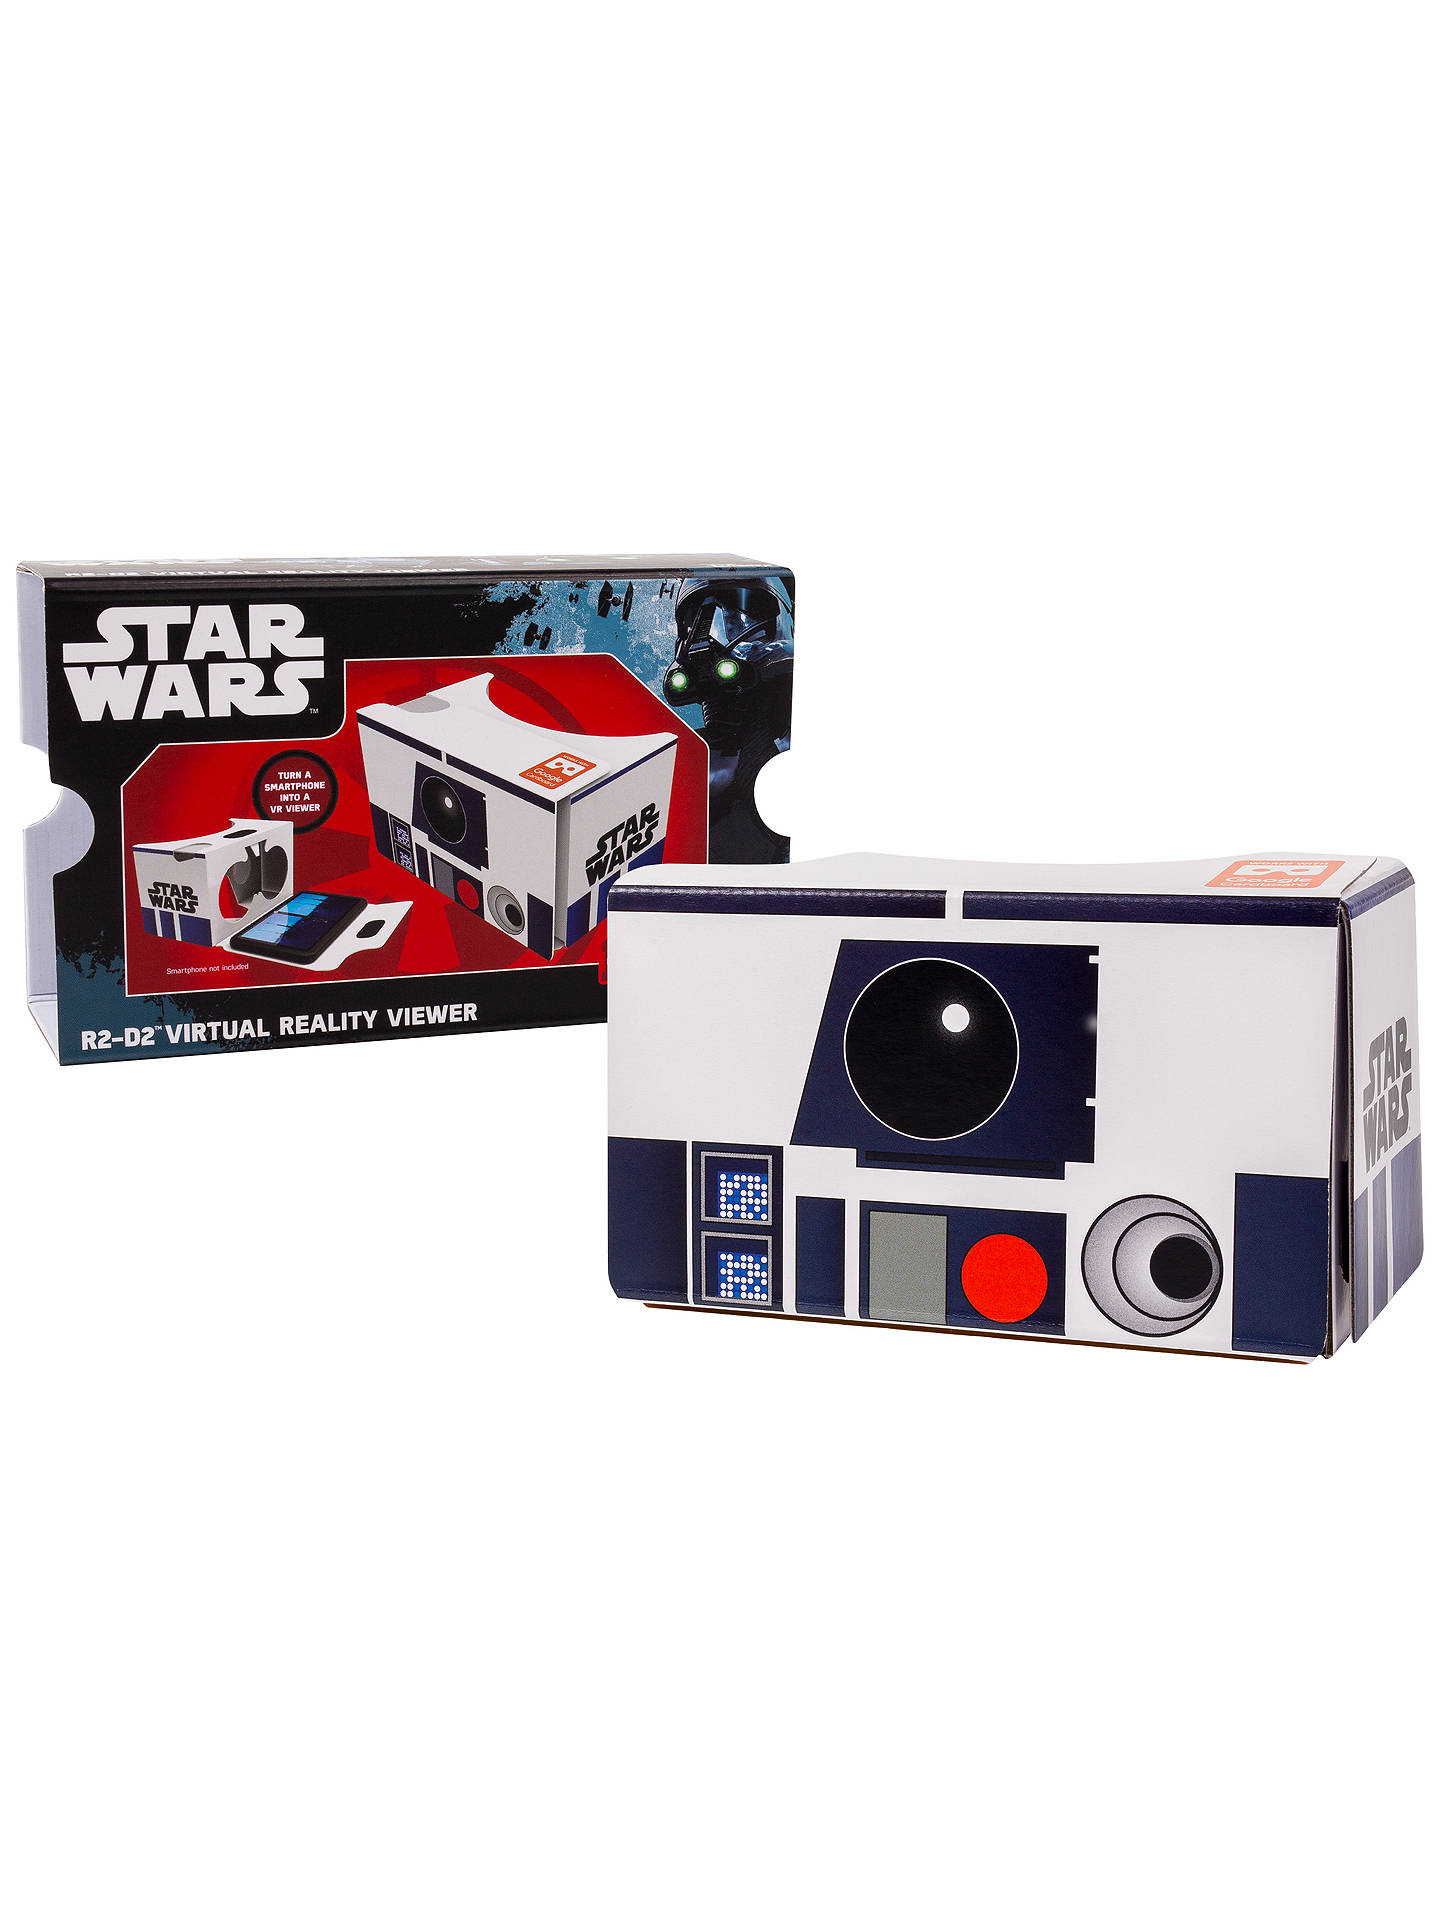 Star Wars: The Force Awakens Cardboard VR Viewer, R2-D2 at